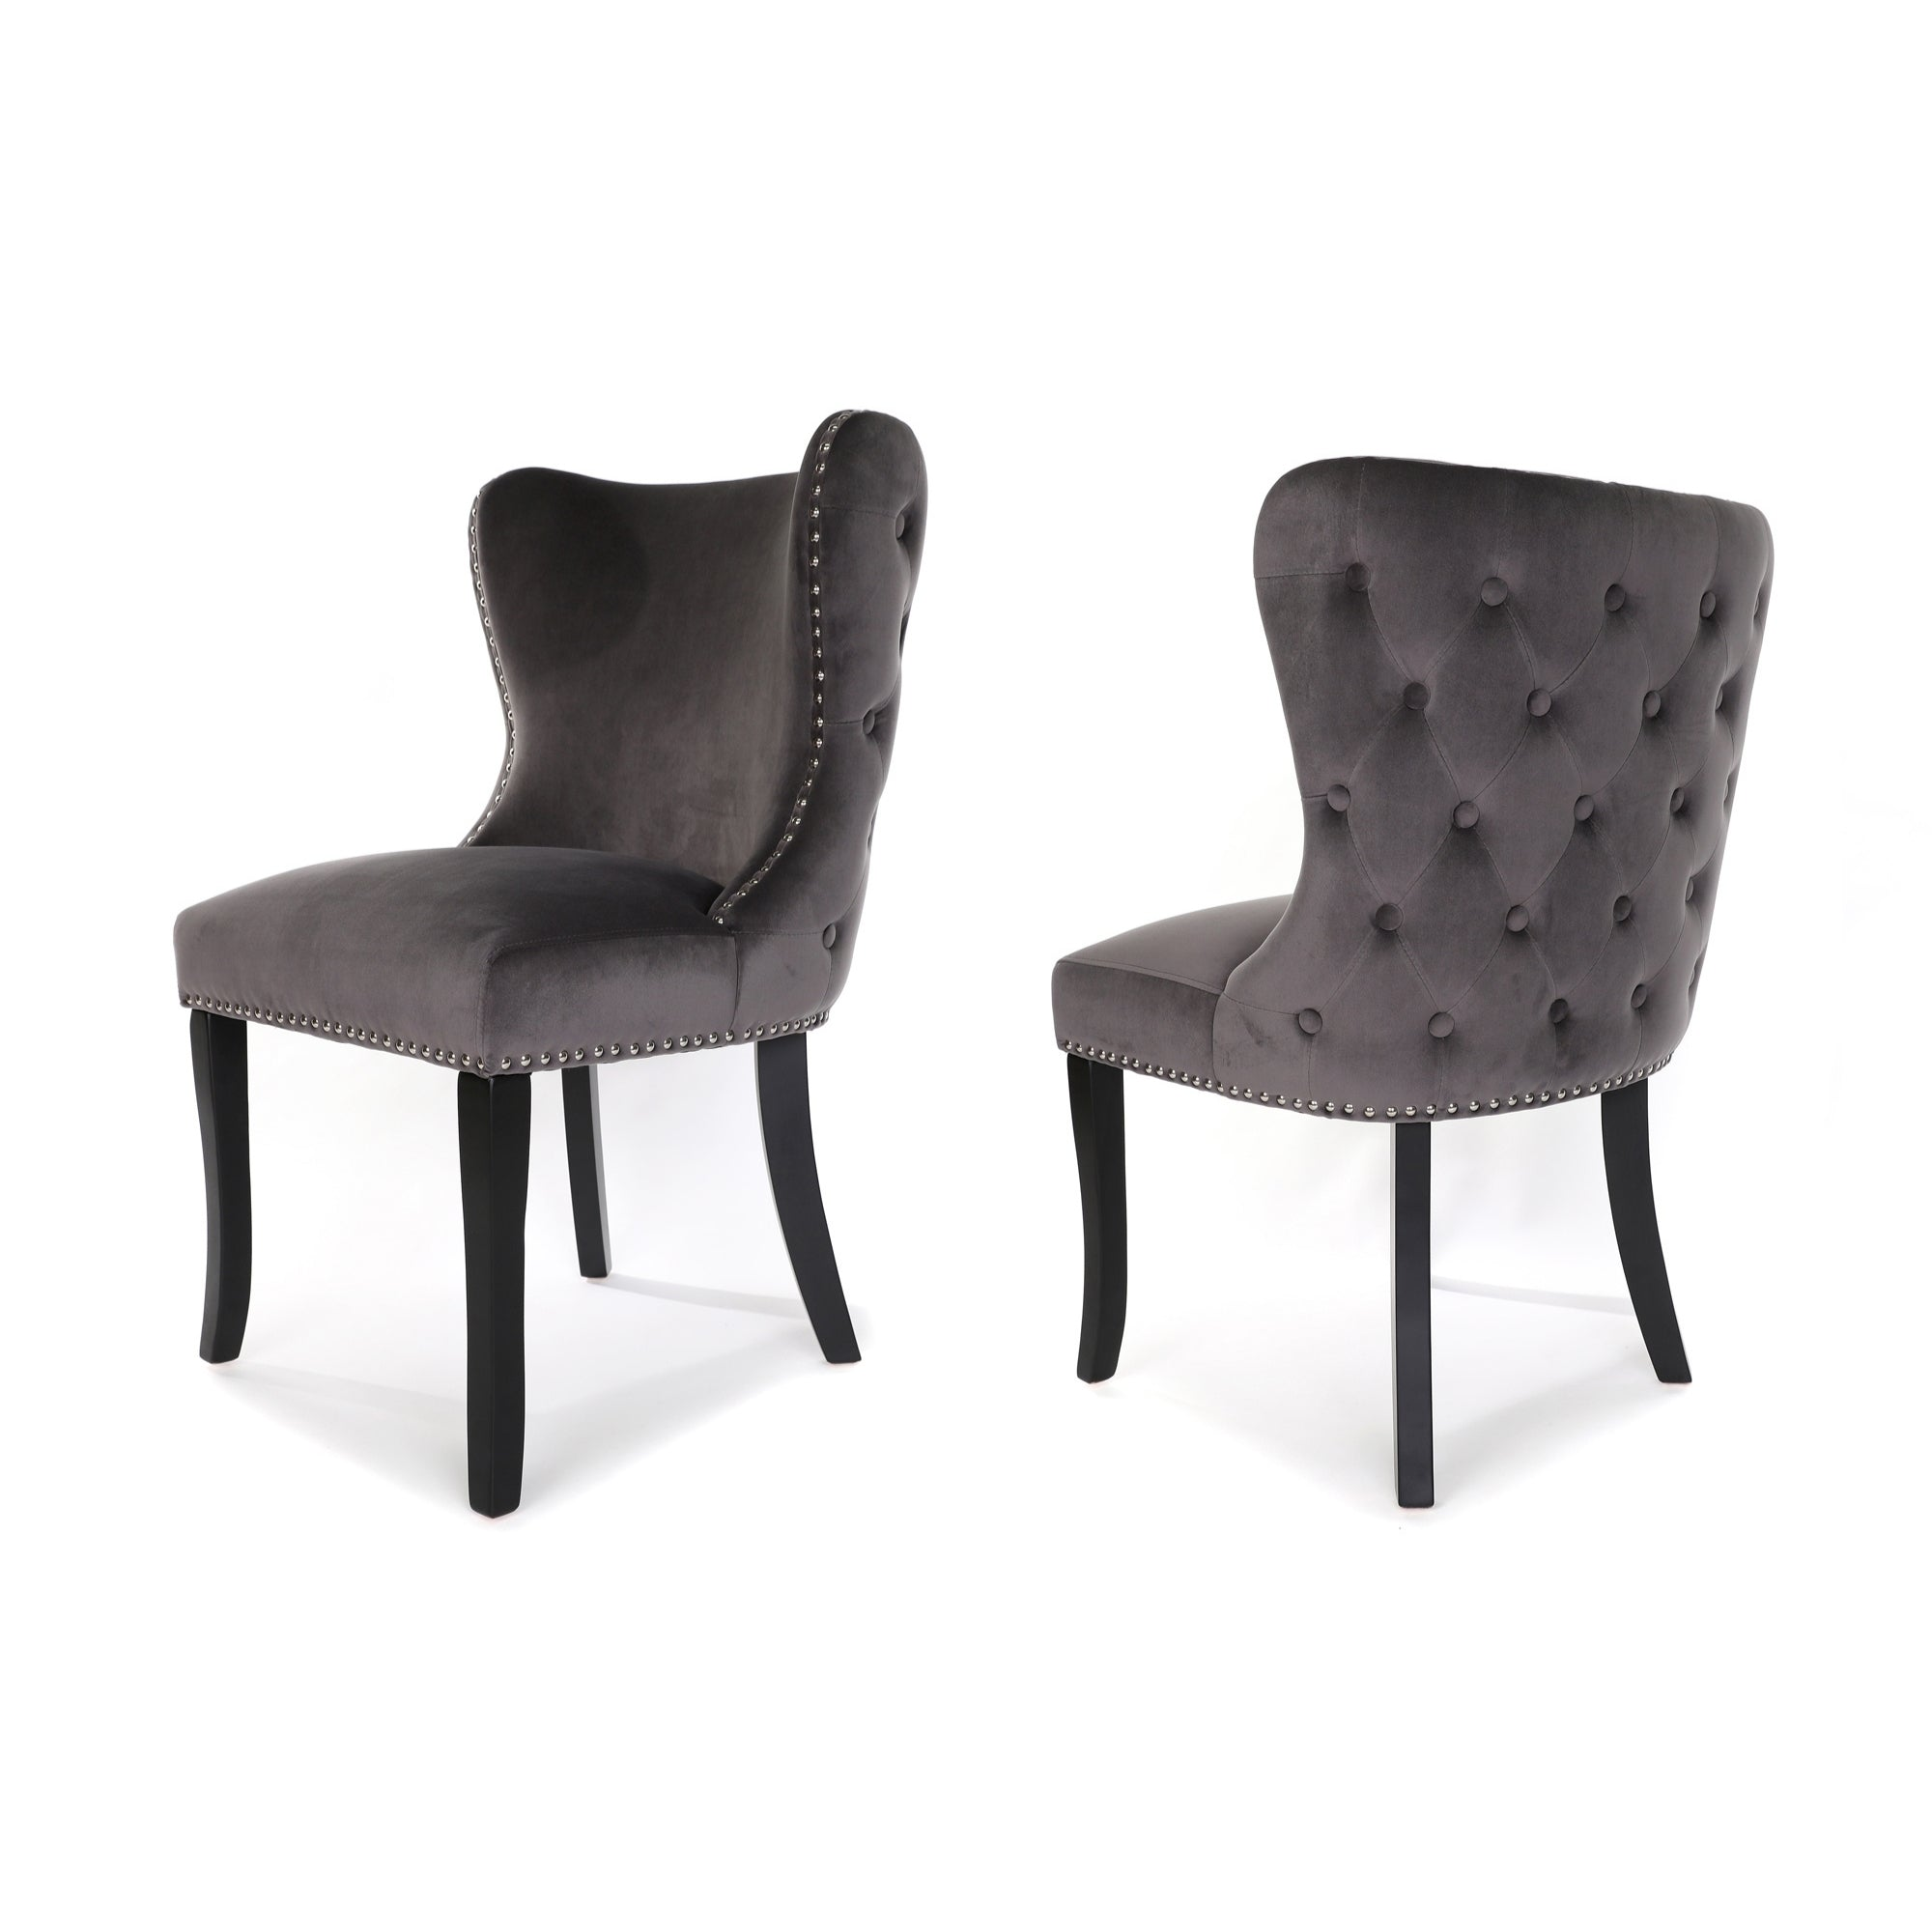 Luci Dining Chair, Charcoal Grey velvet, Black wood leg and Buttoned Back